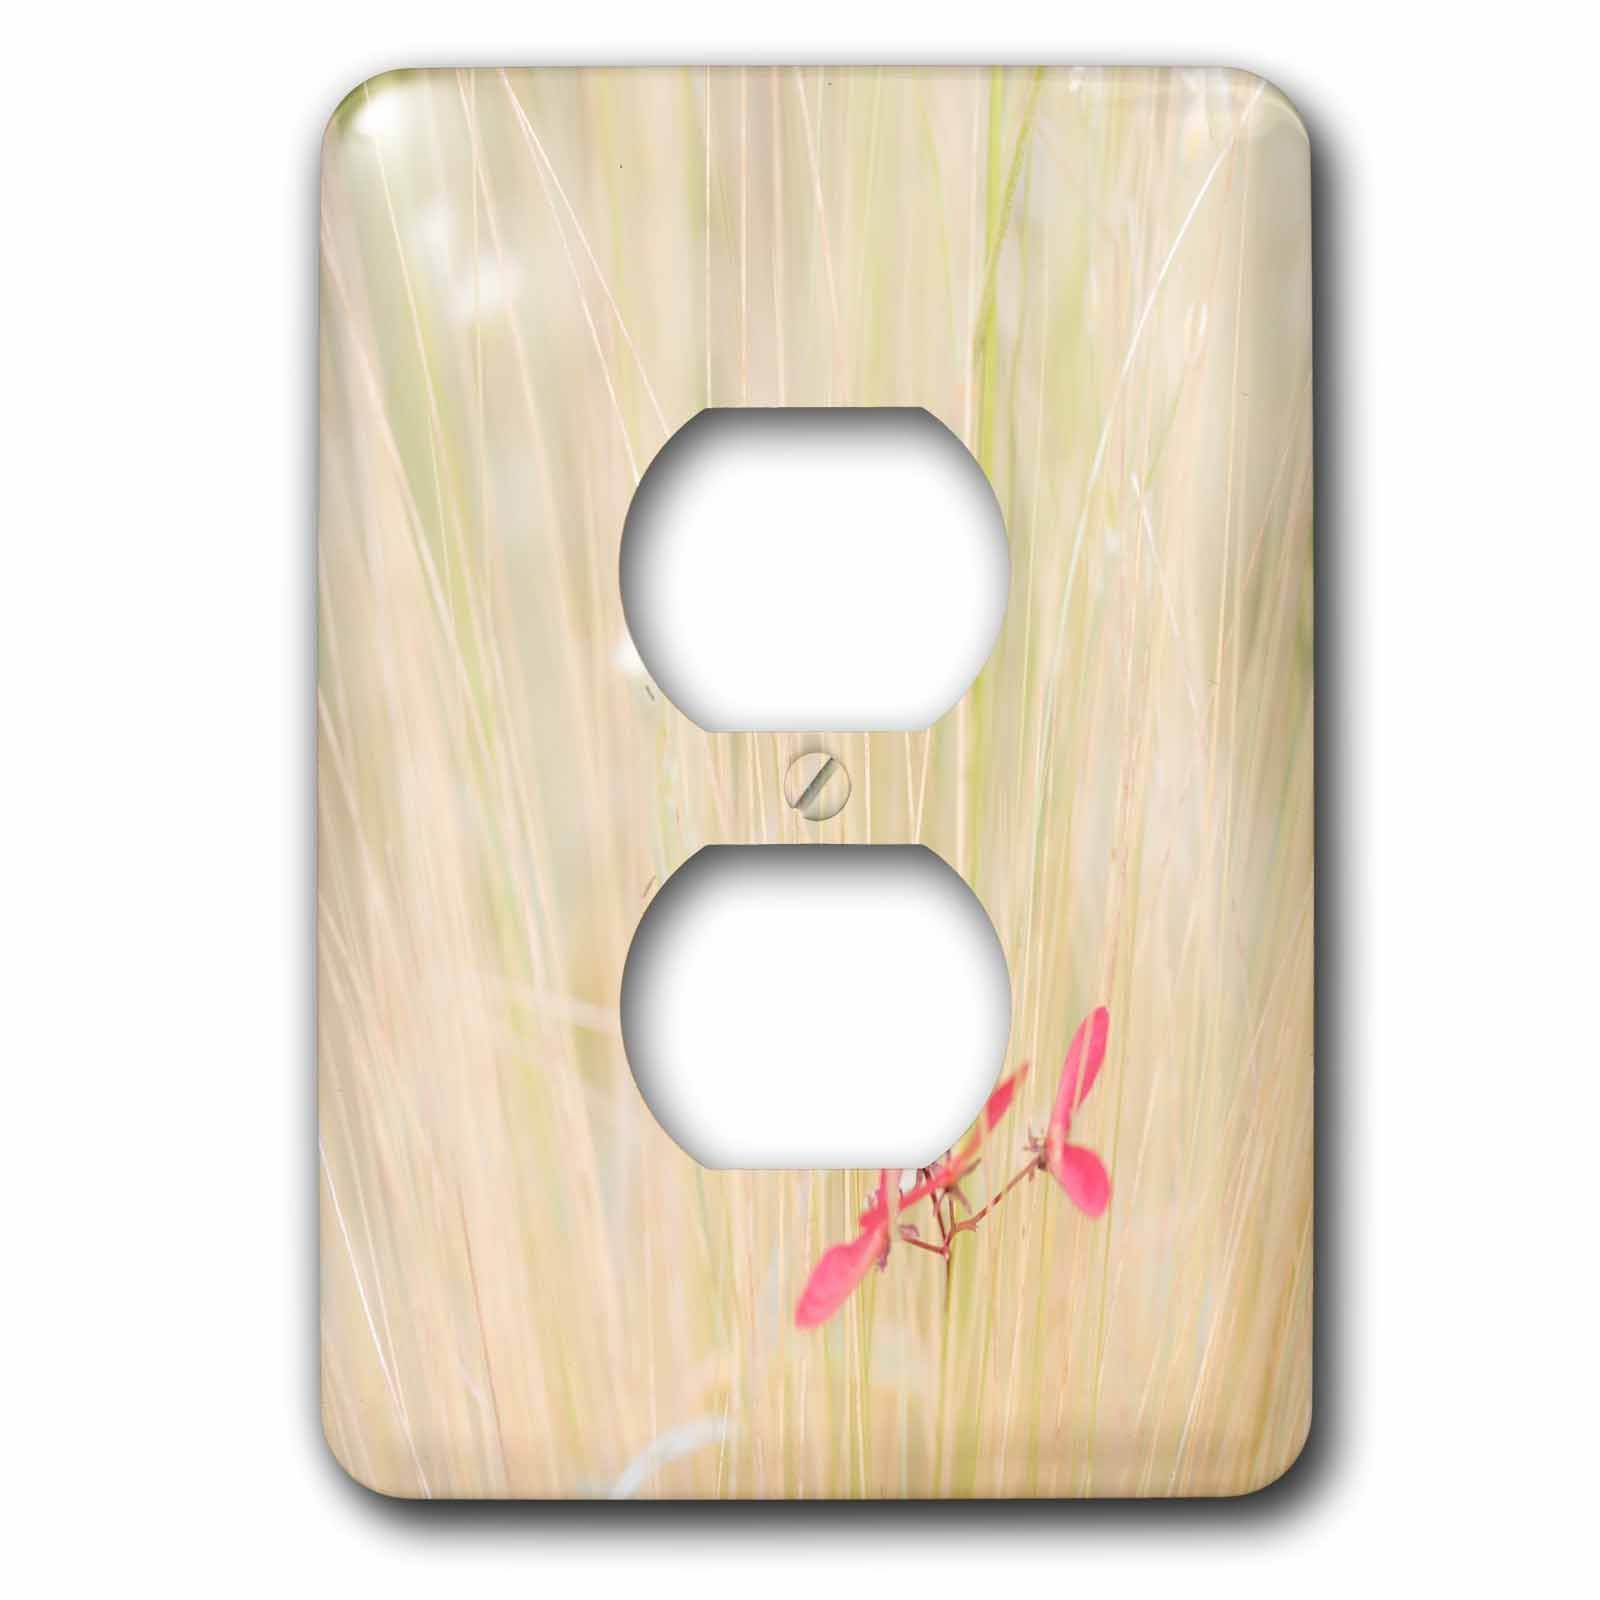 3dRose Danita Delimont - Botanical - USA, Washington State, Seabeck. Maple tree seed in tall grass. - Light Switch Covers - 2 plug outlet cover (lsp_260441_6) by 3dRose